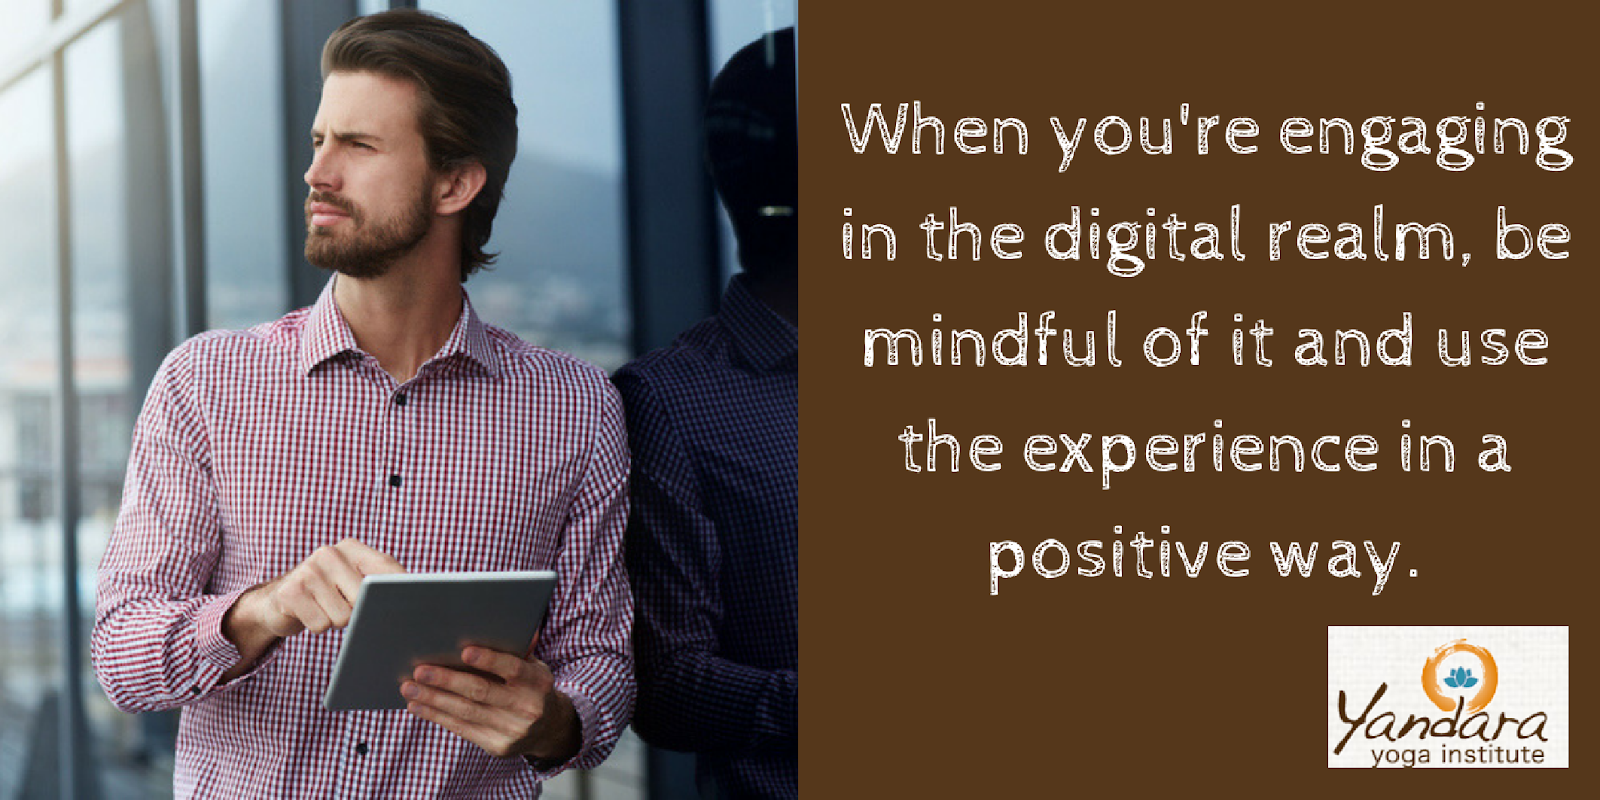 Use digital experiences in a positive way.